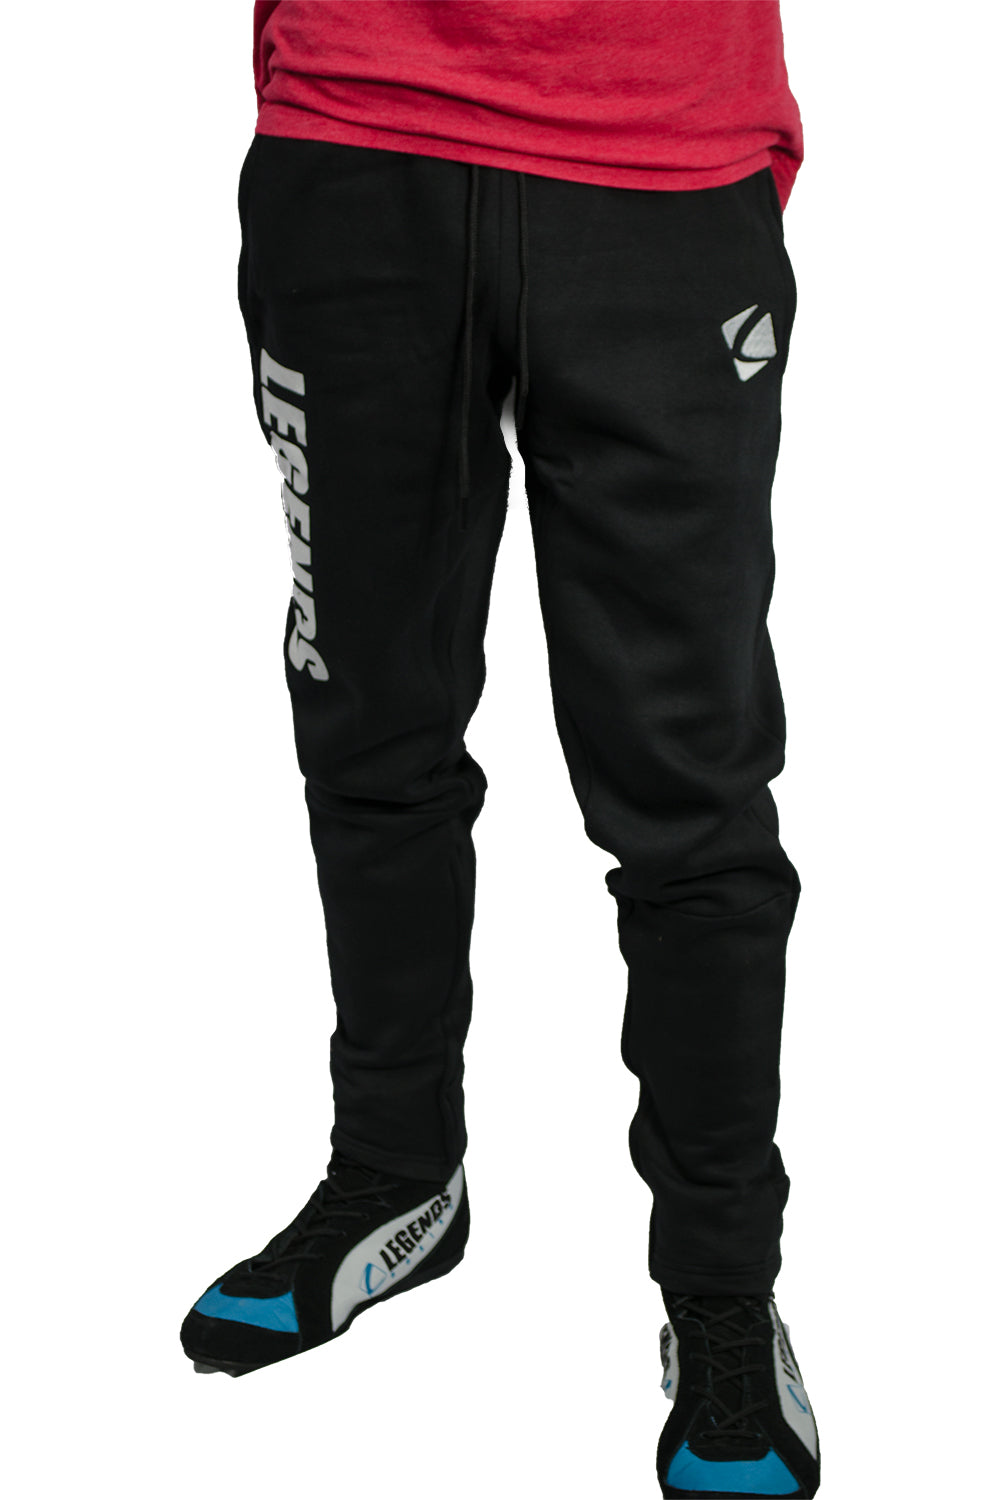 Legends Joggers